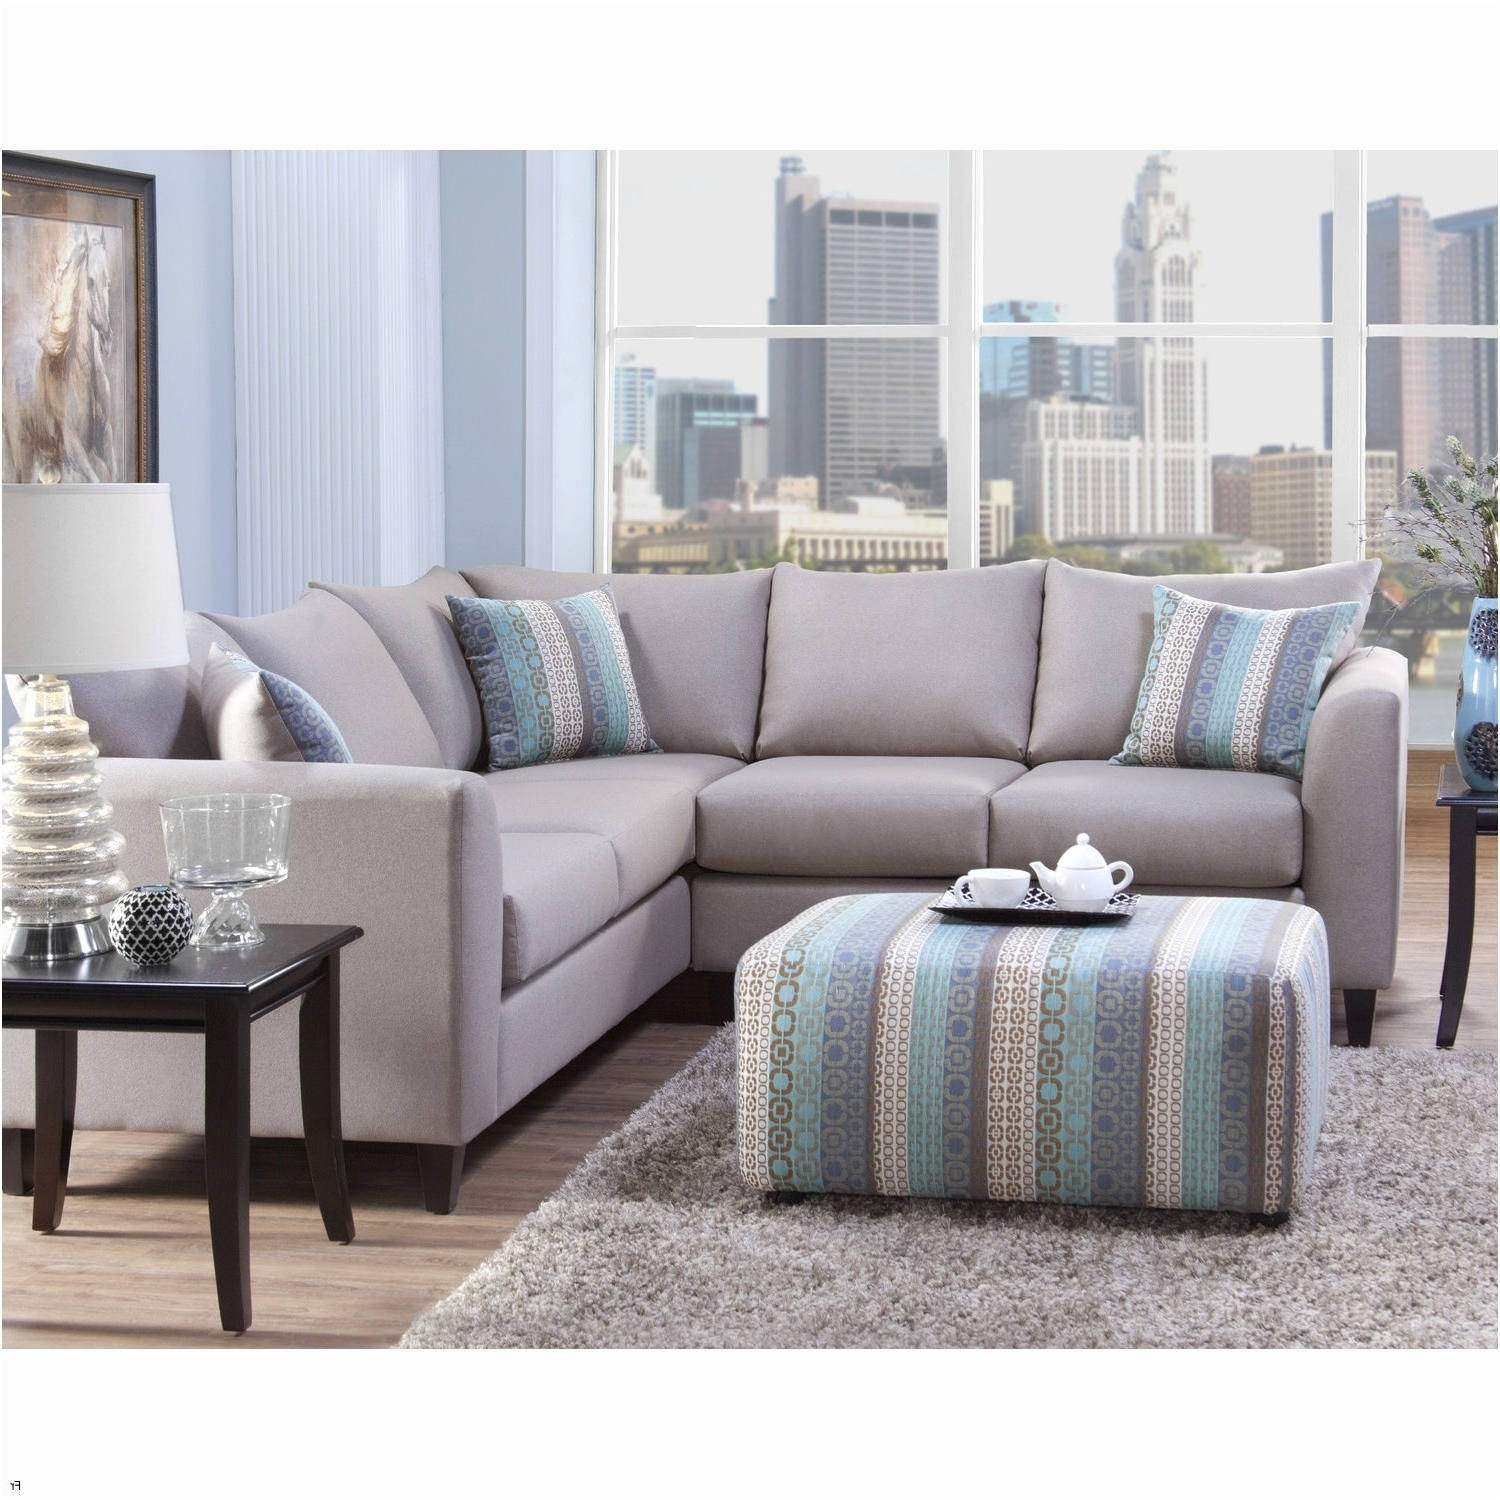 Jipiz With Regard To Latest Light Grey Sectional Sofas (View 4 of 15)